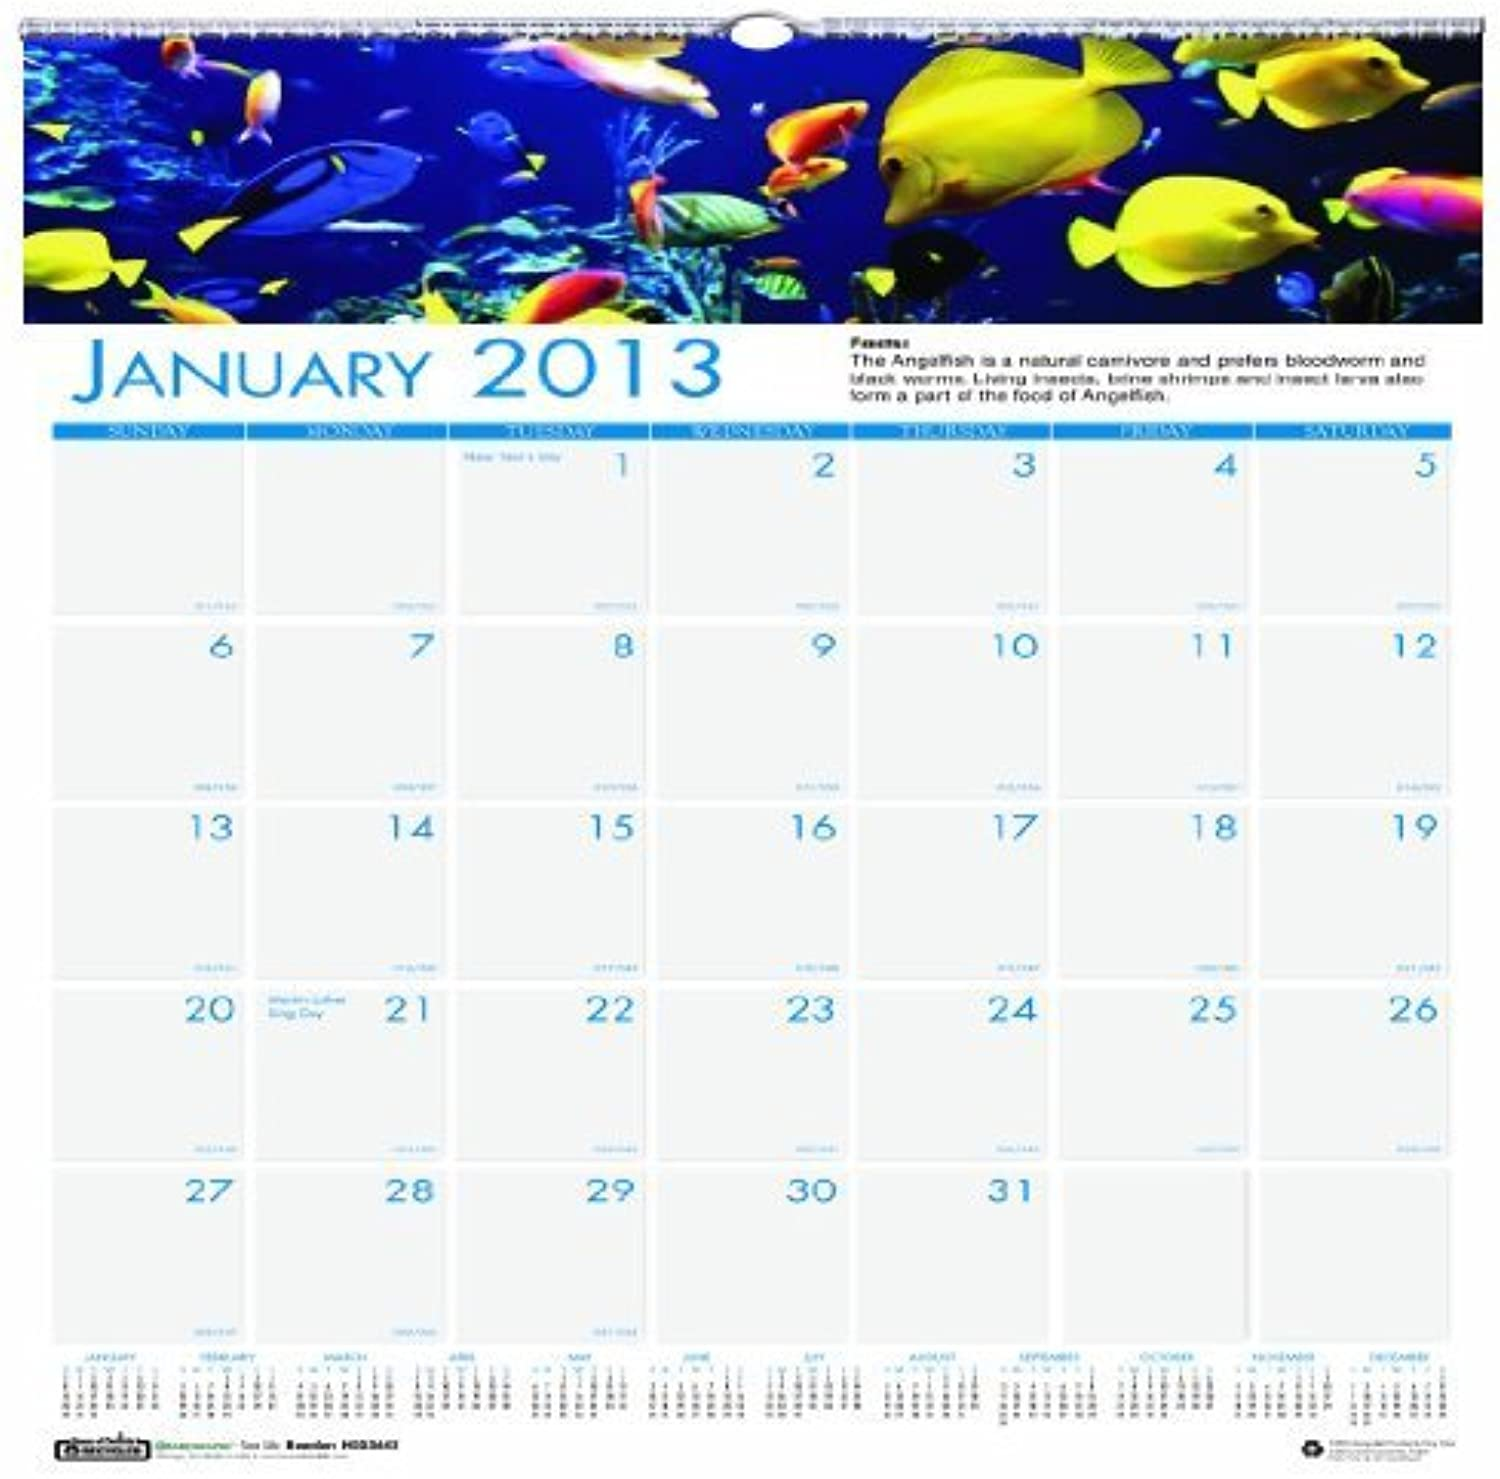 House of Doolittle Earthscapes Sea Life Wand recyceltem recyceltem recyceltem Kalender 12 Monate Januar 2013 bis Dezember 2013 30,5 x 30,5 cm, Farbe Fotos (hod3641) von House of Doolittle B01AVOECDA | Perfekte Verarbeitung